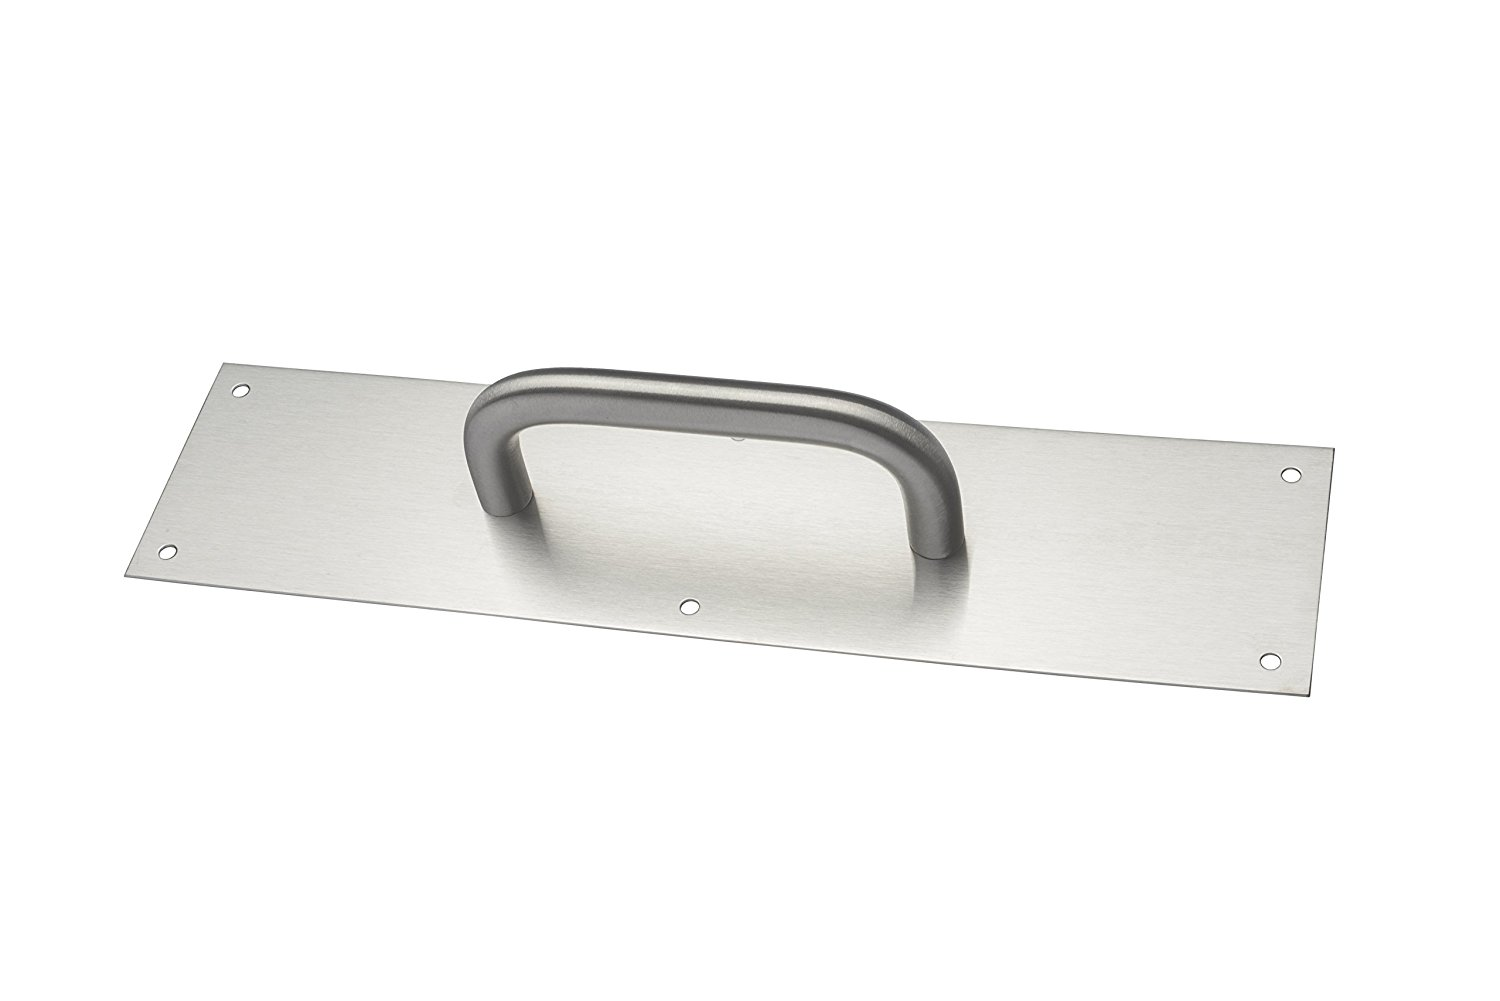 "Rockwood BF107 x 70A.32D Stainless Steel Pull Plate, 12"" Height x 3"" Width x 0.050"" Thick, 8"" Center-to-Center Handle Length, 3/4"" Handle Diameter, 2-1/2"" Barrier-Free Clearance, Satin Finish"